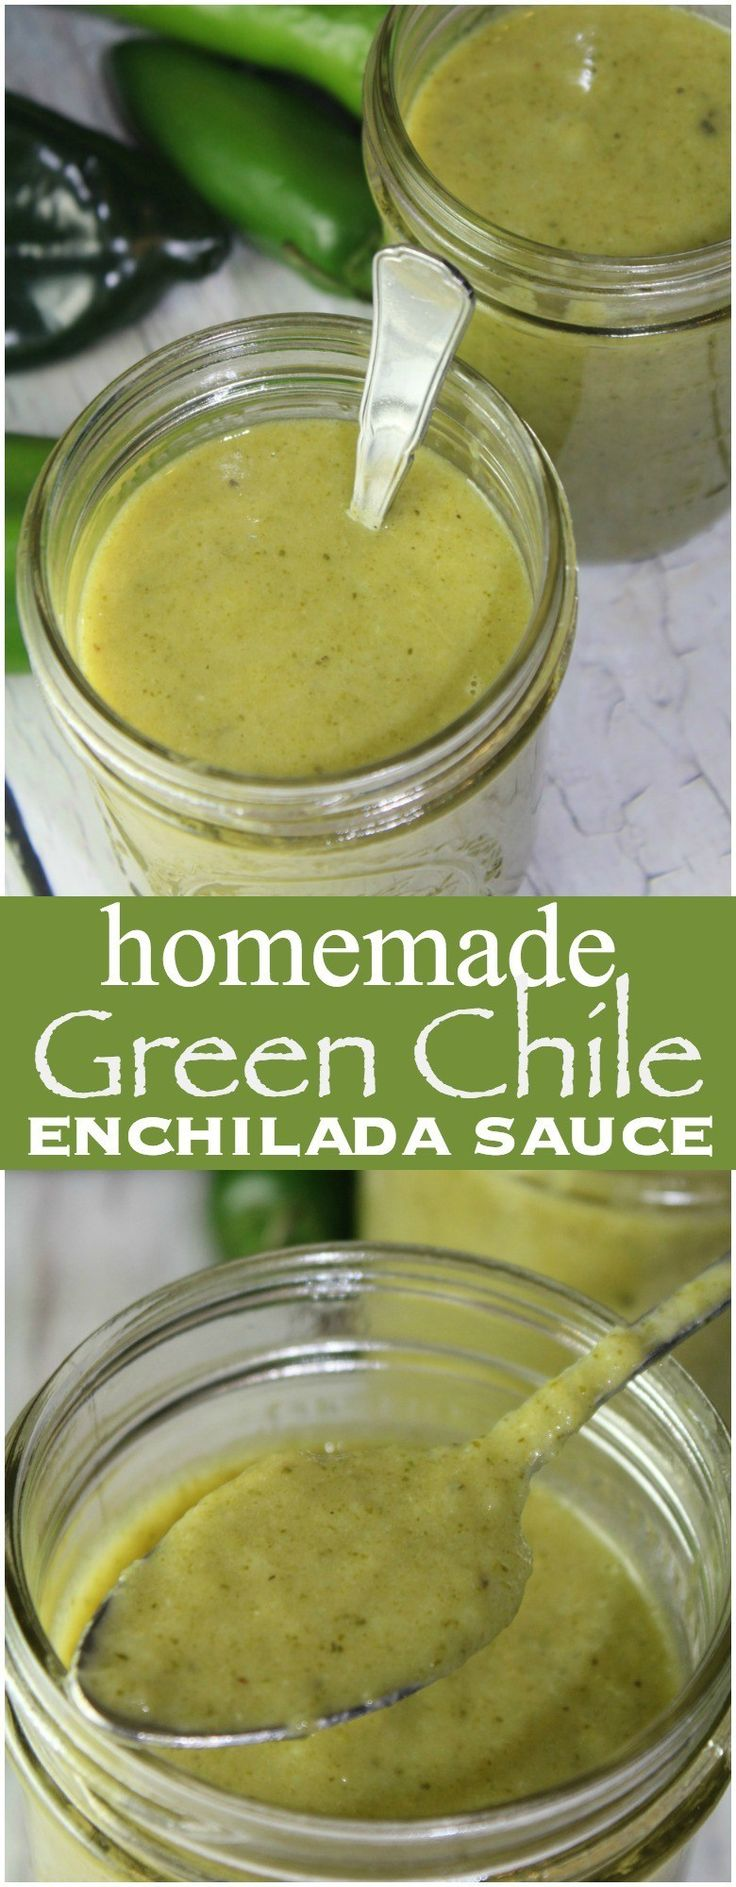 This Homemade Green Enchilada Sauce is SUPER easy to make and works great for everything from enchiladas to chicken, seafood + more!